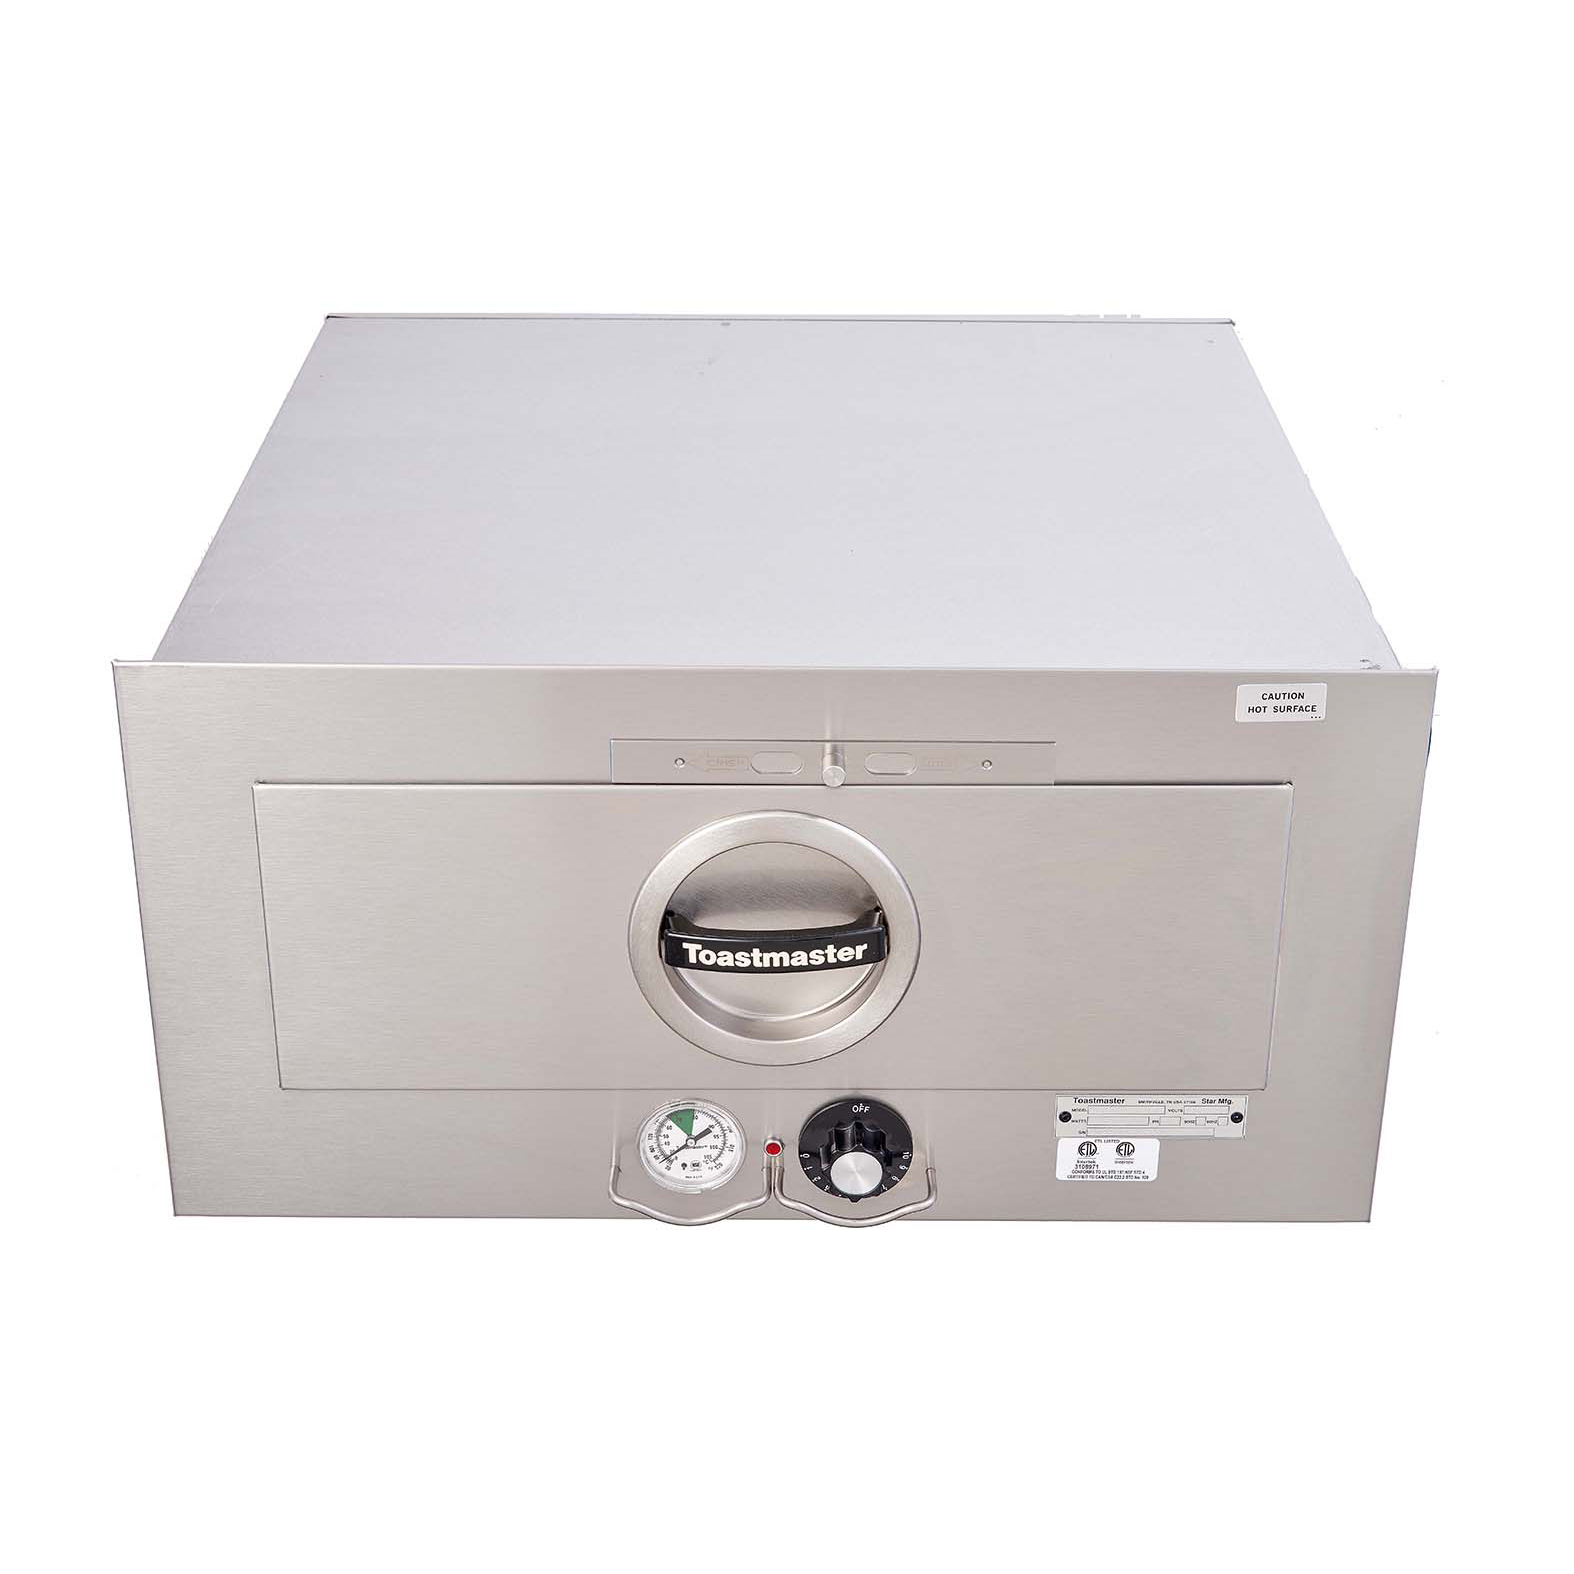 Toastmaster 3A20AT09 warming drawer, built-in